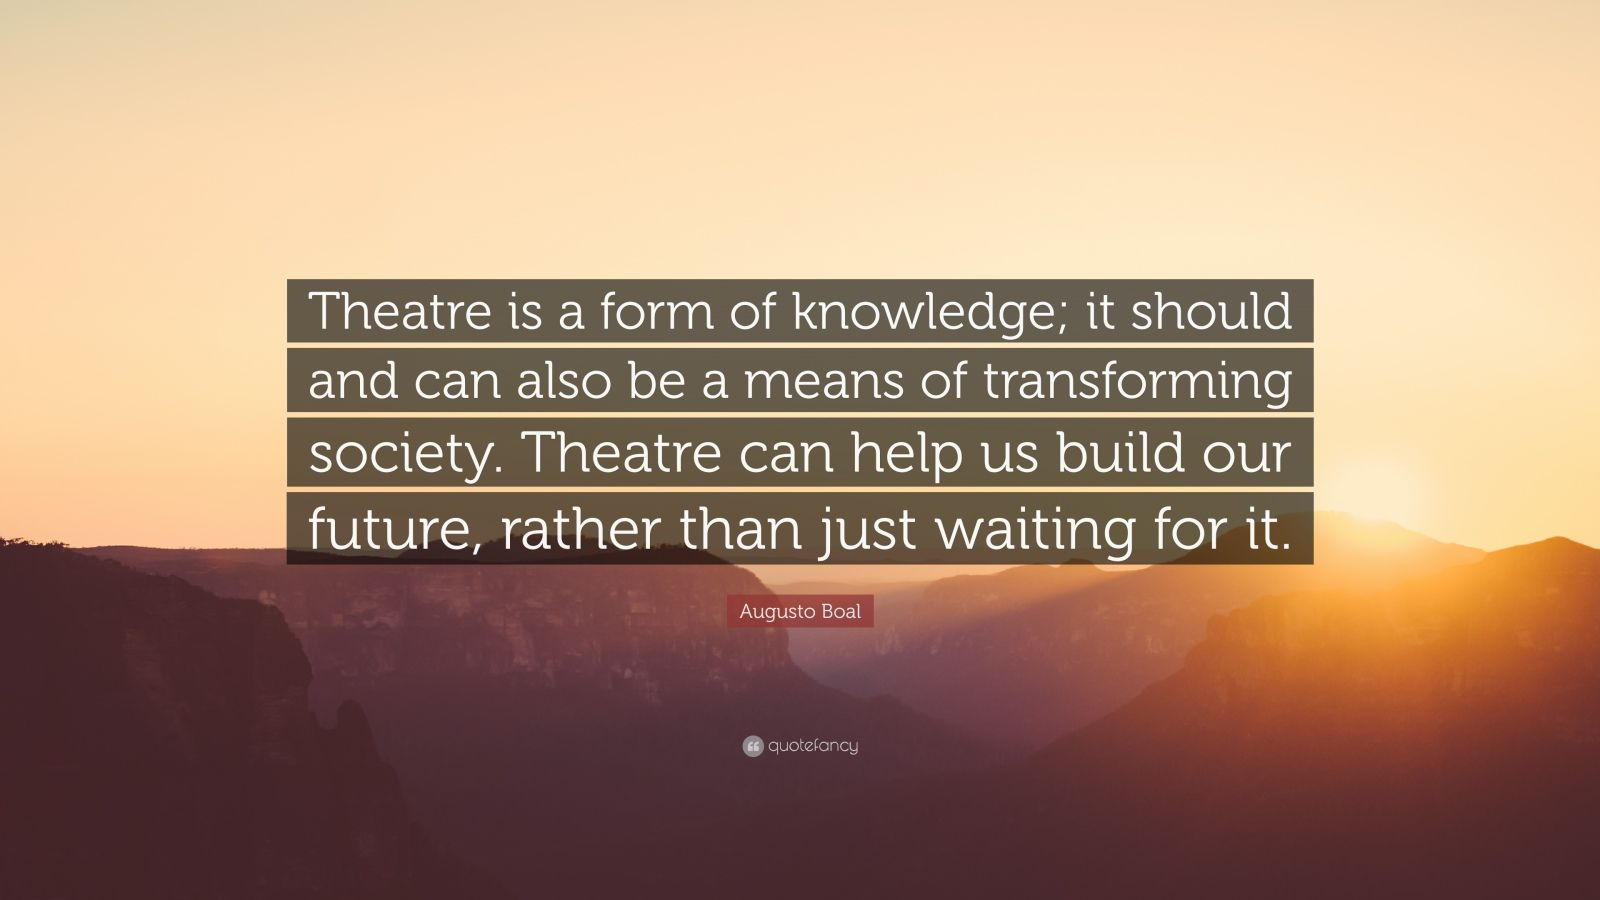 Startup Quotes Wallpaper Augusto Boal Quote Theatre Is A Form Of Knowledge It